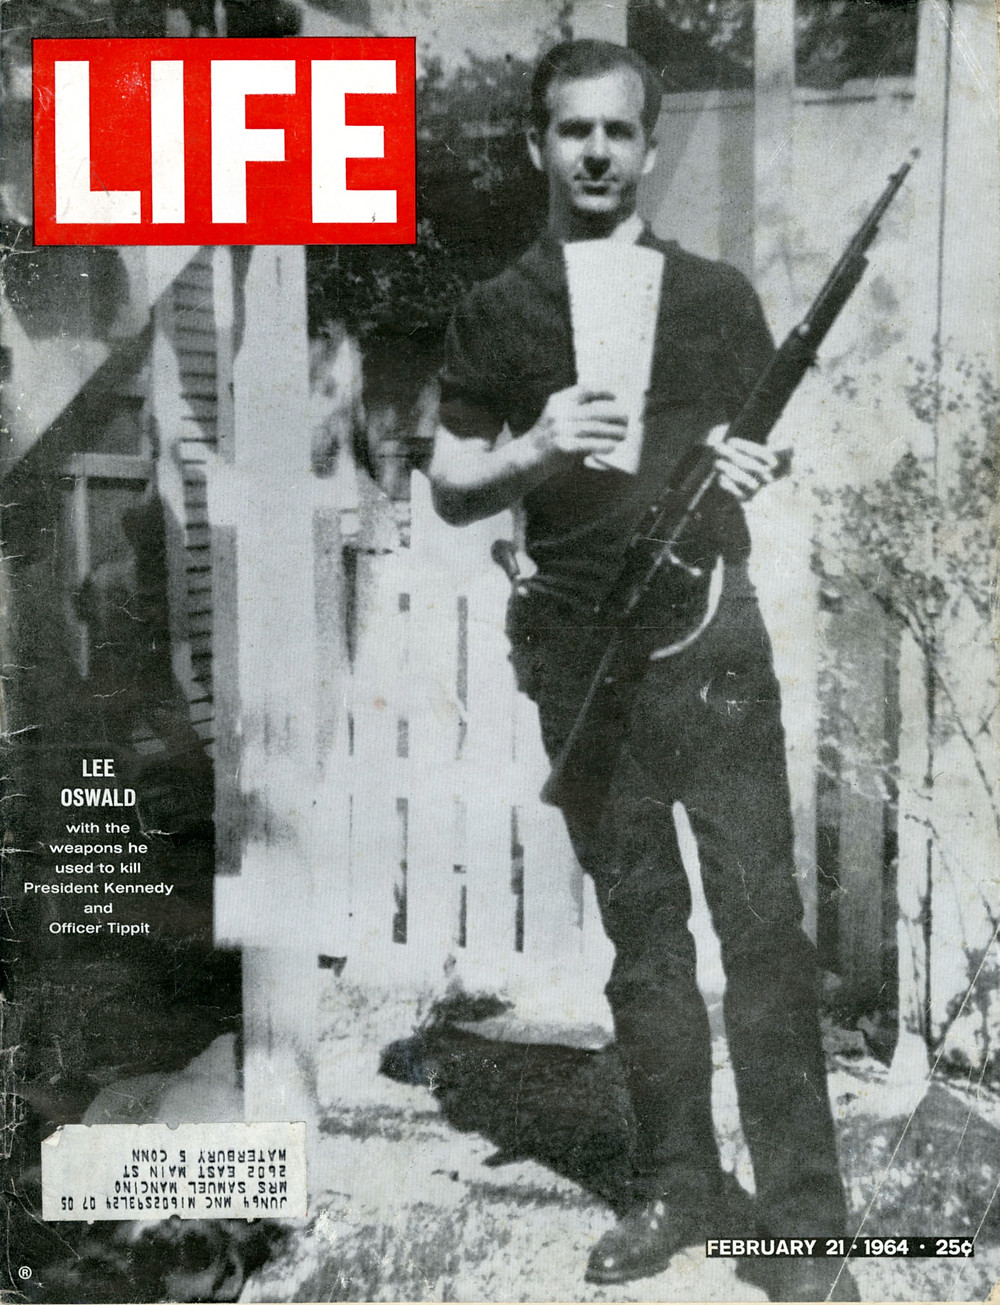 Life magazine- LIFE was more than a magazine, it was the record of its time.